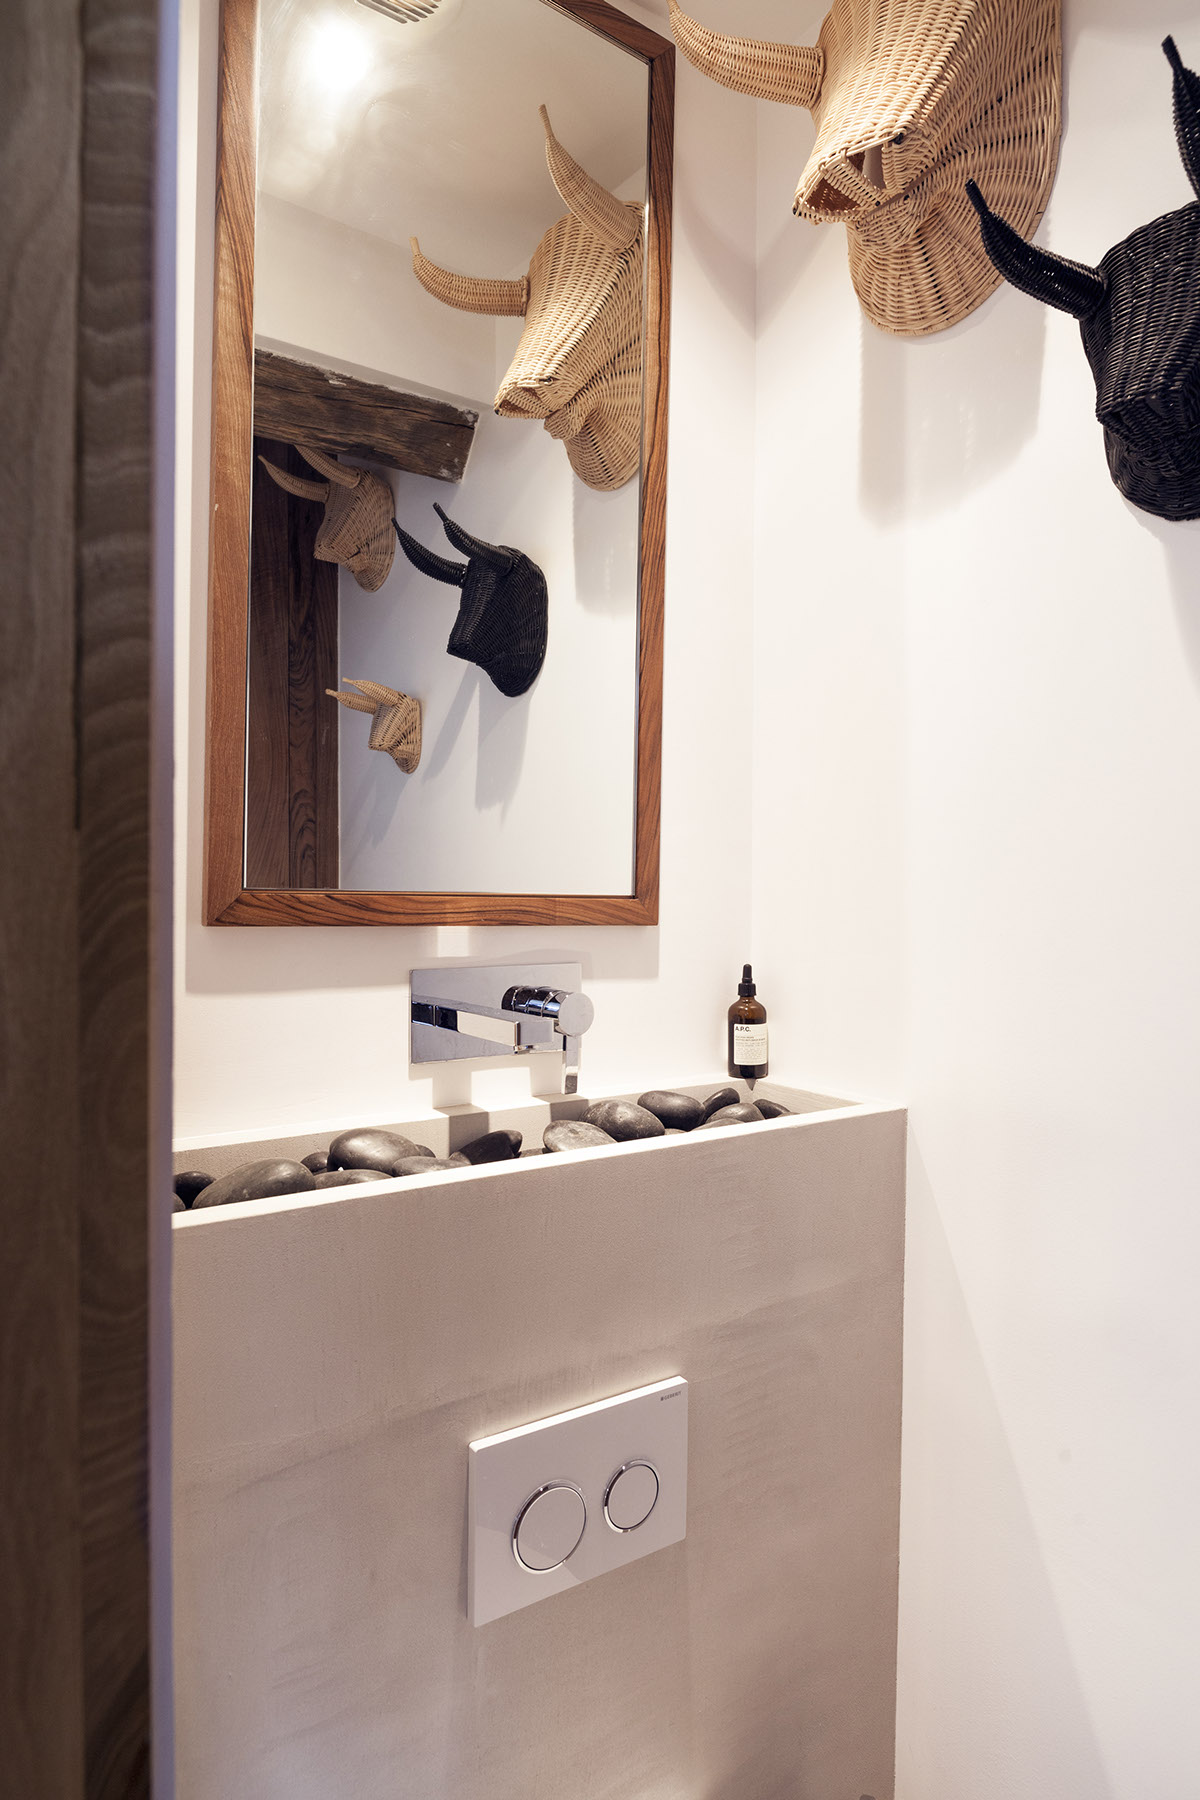 River Rock Sink - 2 small and cute french apartments under 50 square meters